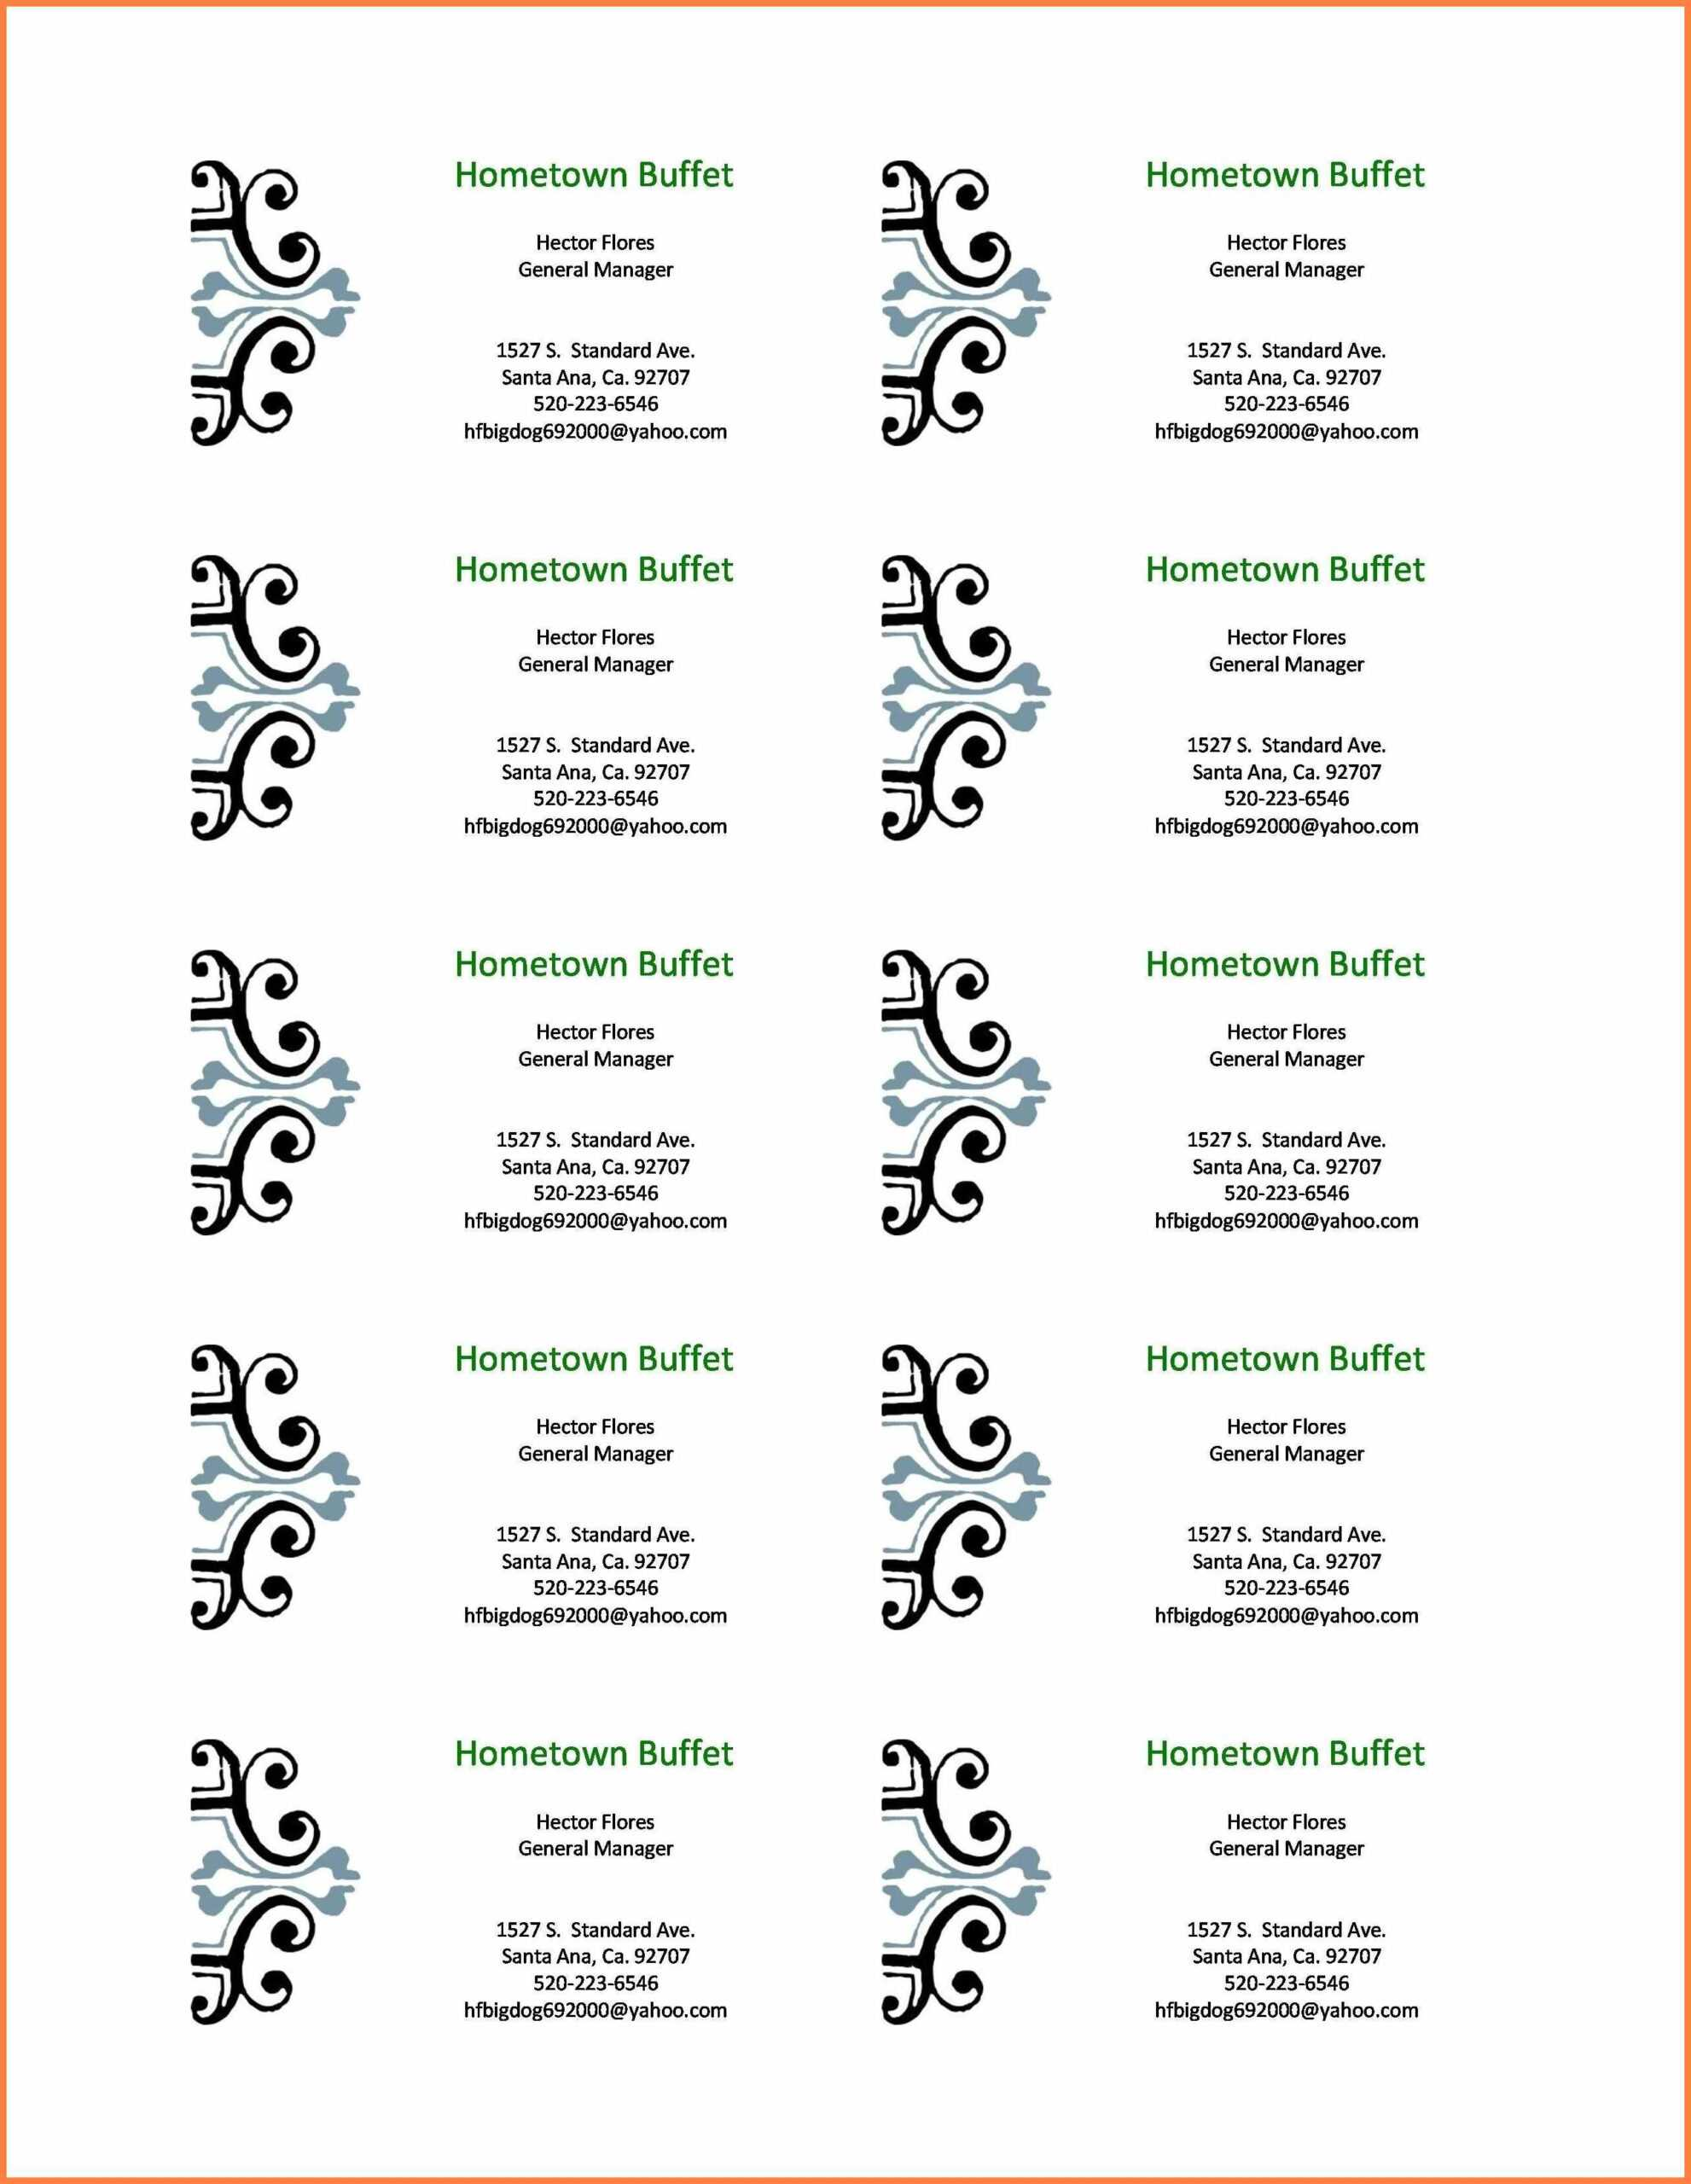 002 Microsoft Word Business Card Template Free Cards In Free Business Cards Templates For Word